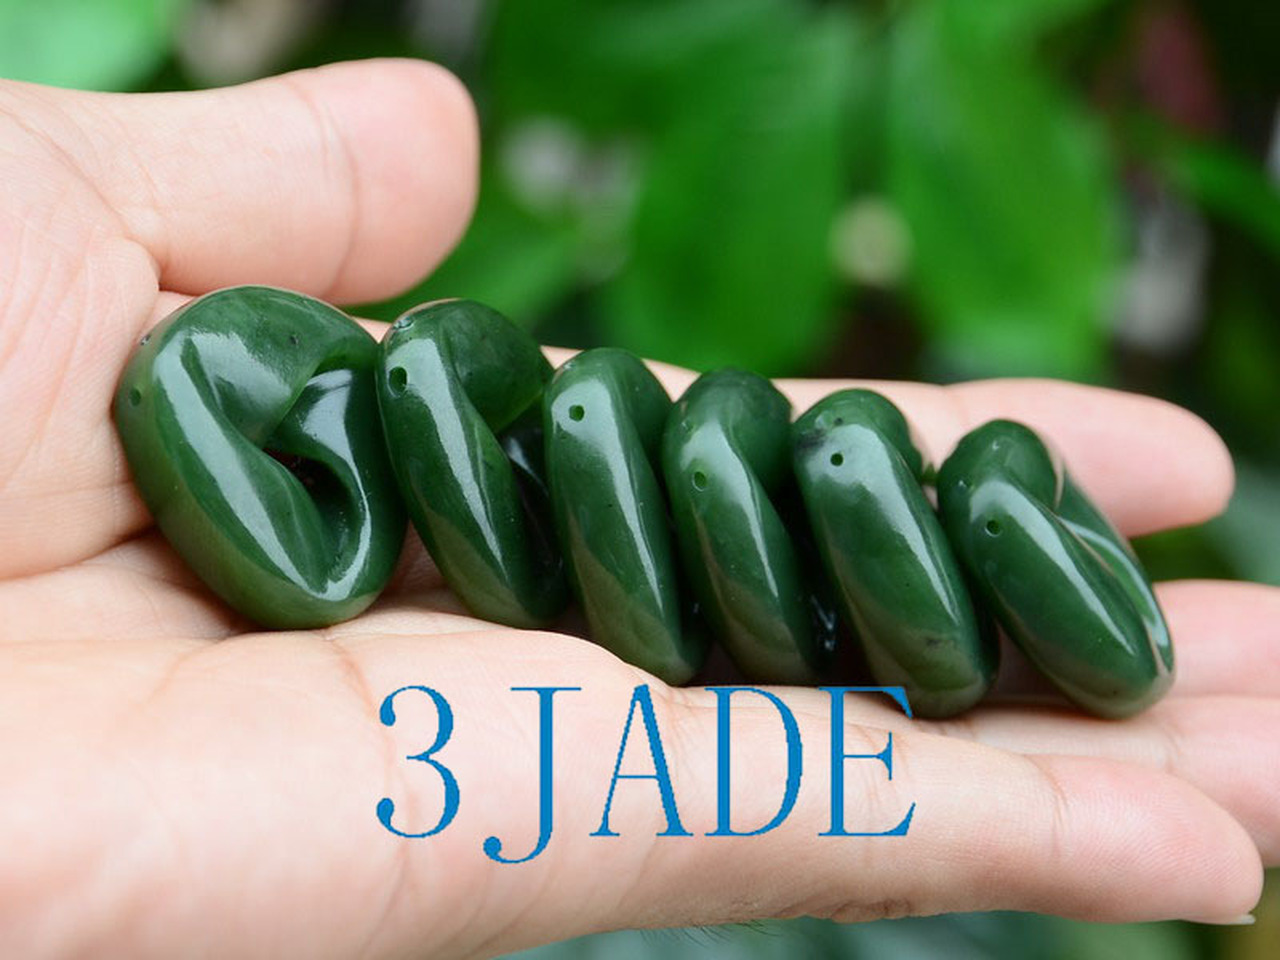 Hand Carved Green Nephrite Jade Moebius Band/Möbius Strip/Moebius Ribbon Pendant/Necklace